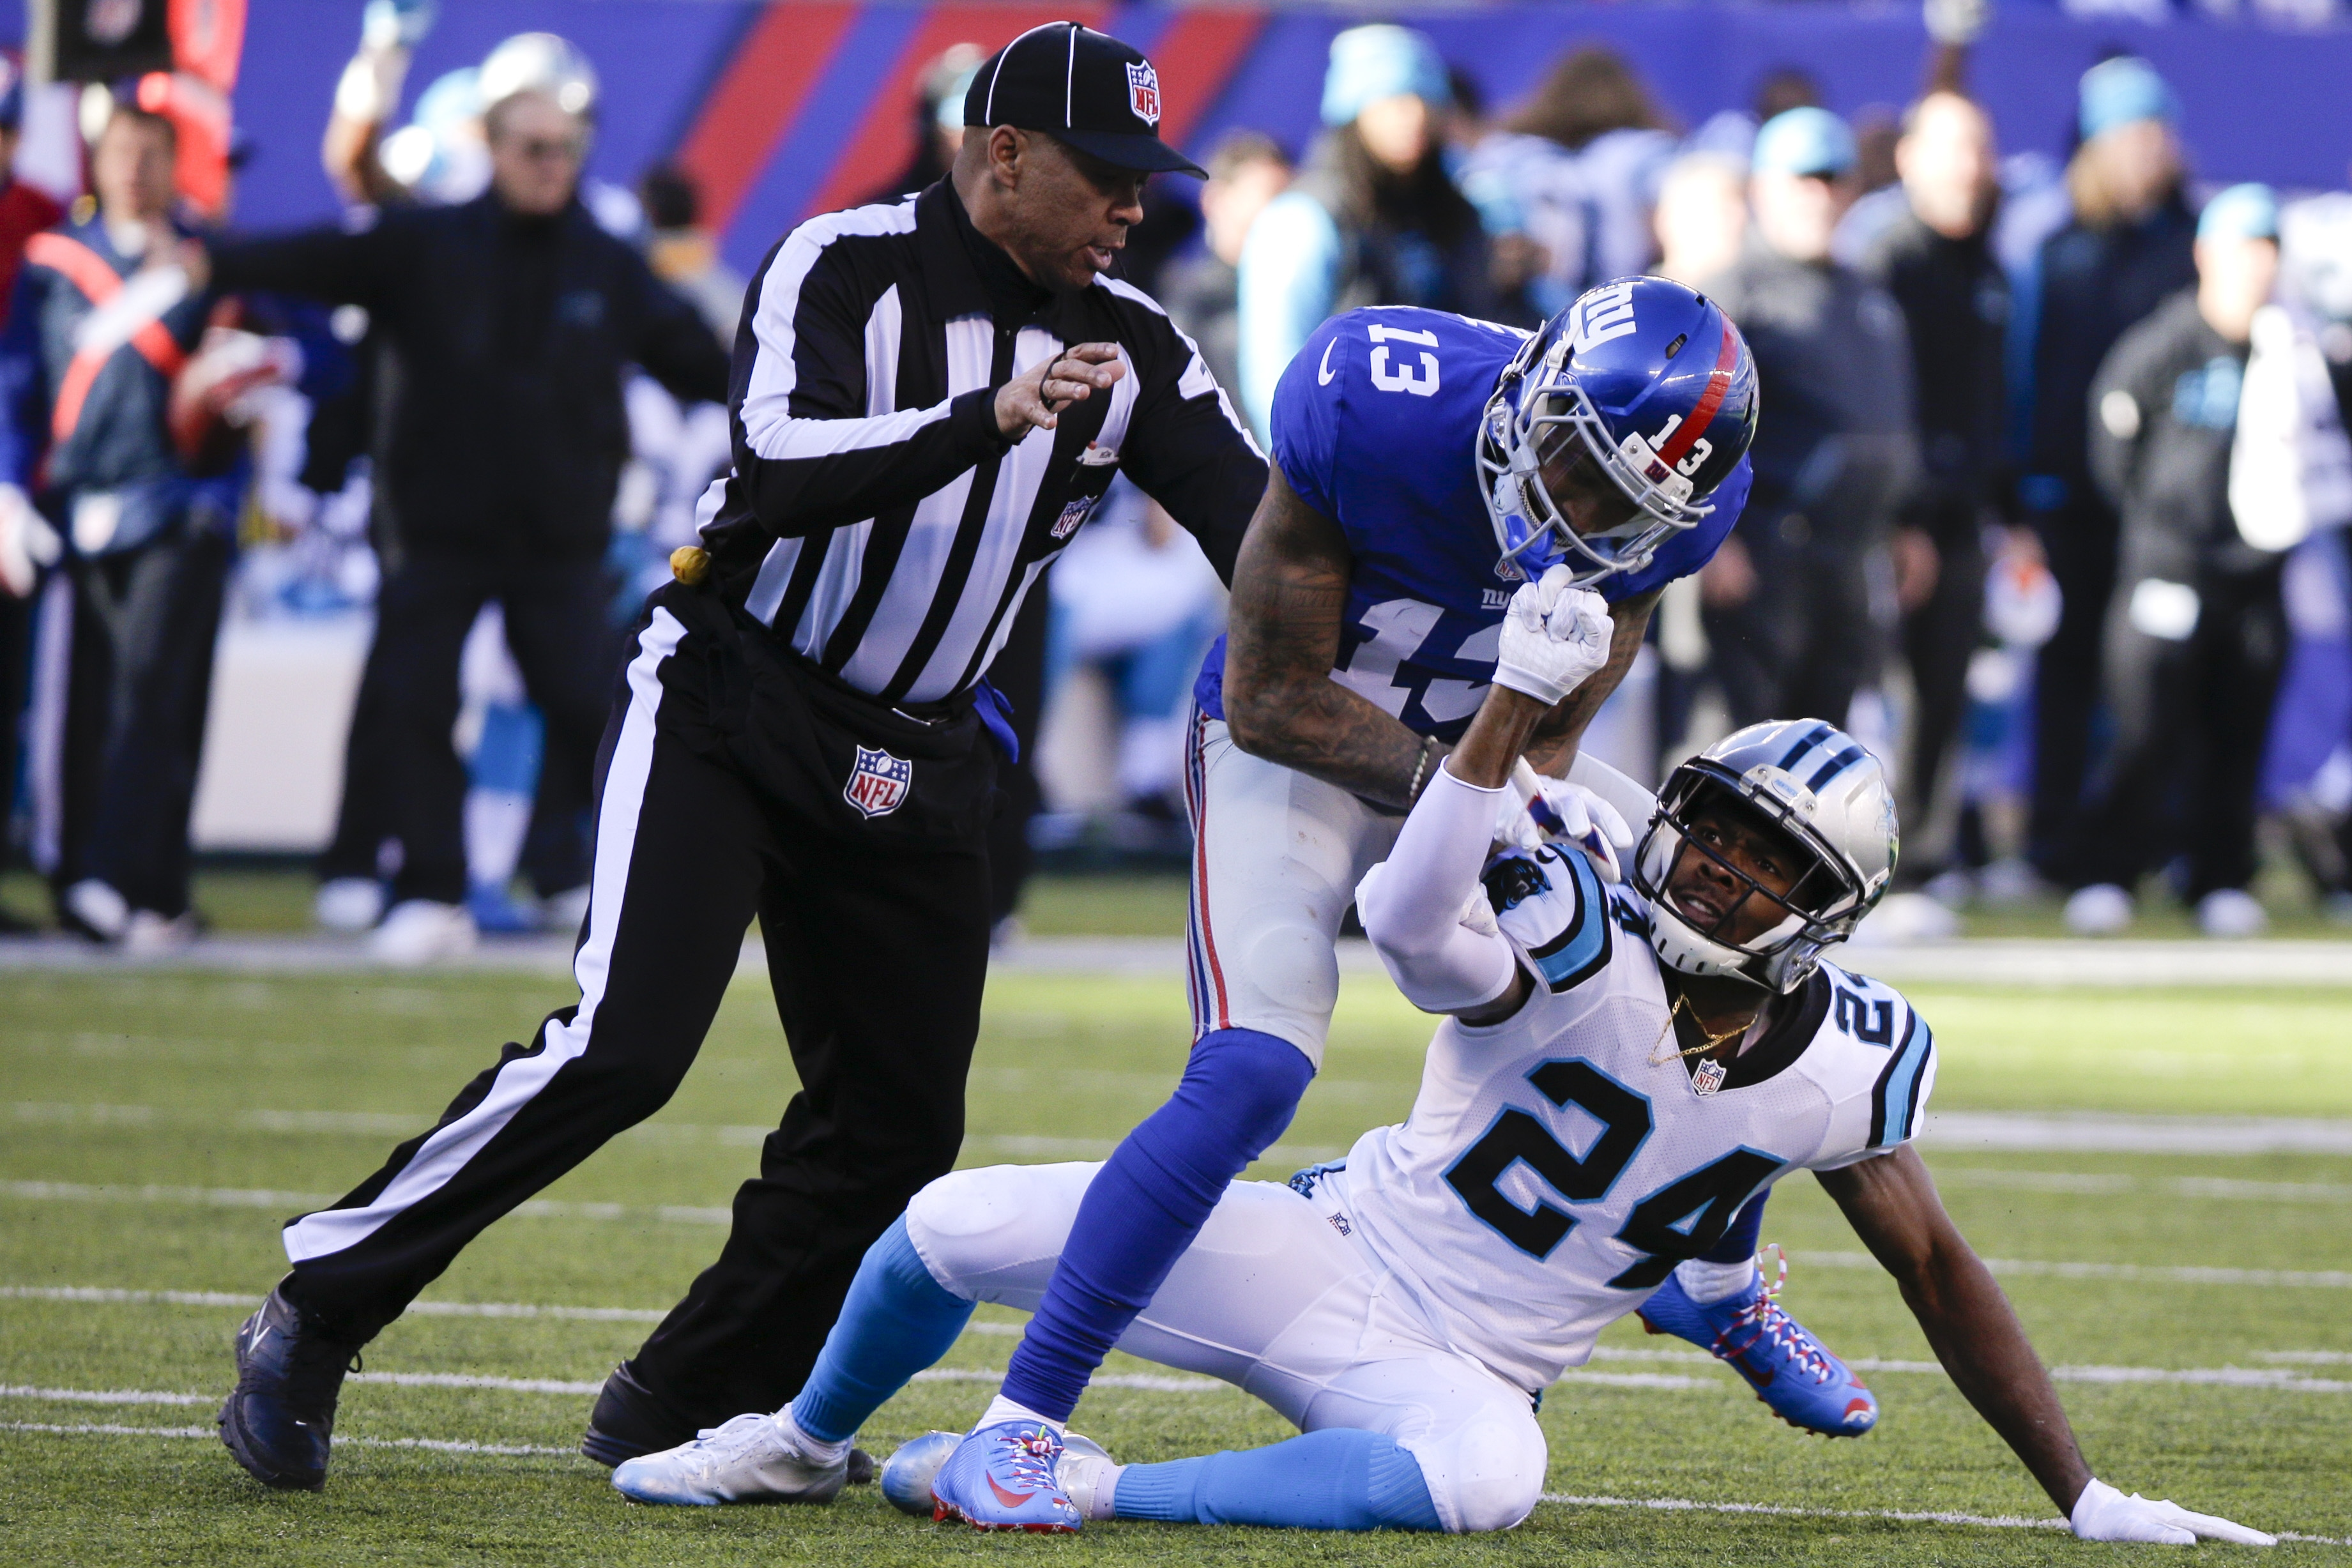 FILE - In this Dec. 20, 2015, file photo, a referee, left, separates New York Giants wide receiver Odell Beckham (13) and Carolina Panthers' Josh Norman (24) during the first half of an NFL football game Sunday, Dec. 20, 2015, in East Rutherford, N.J. In